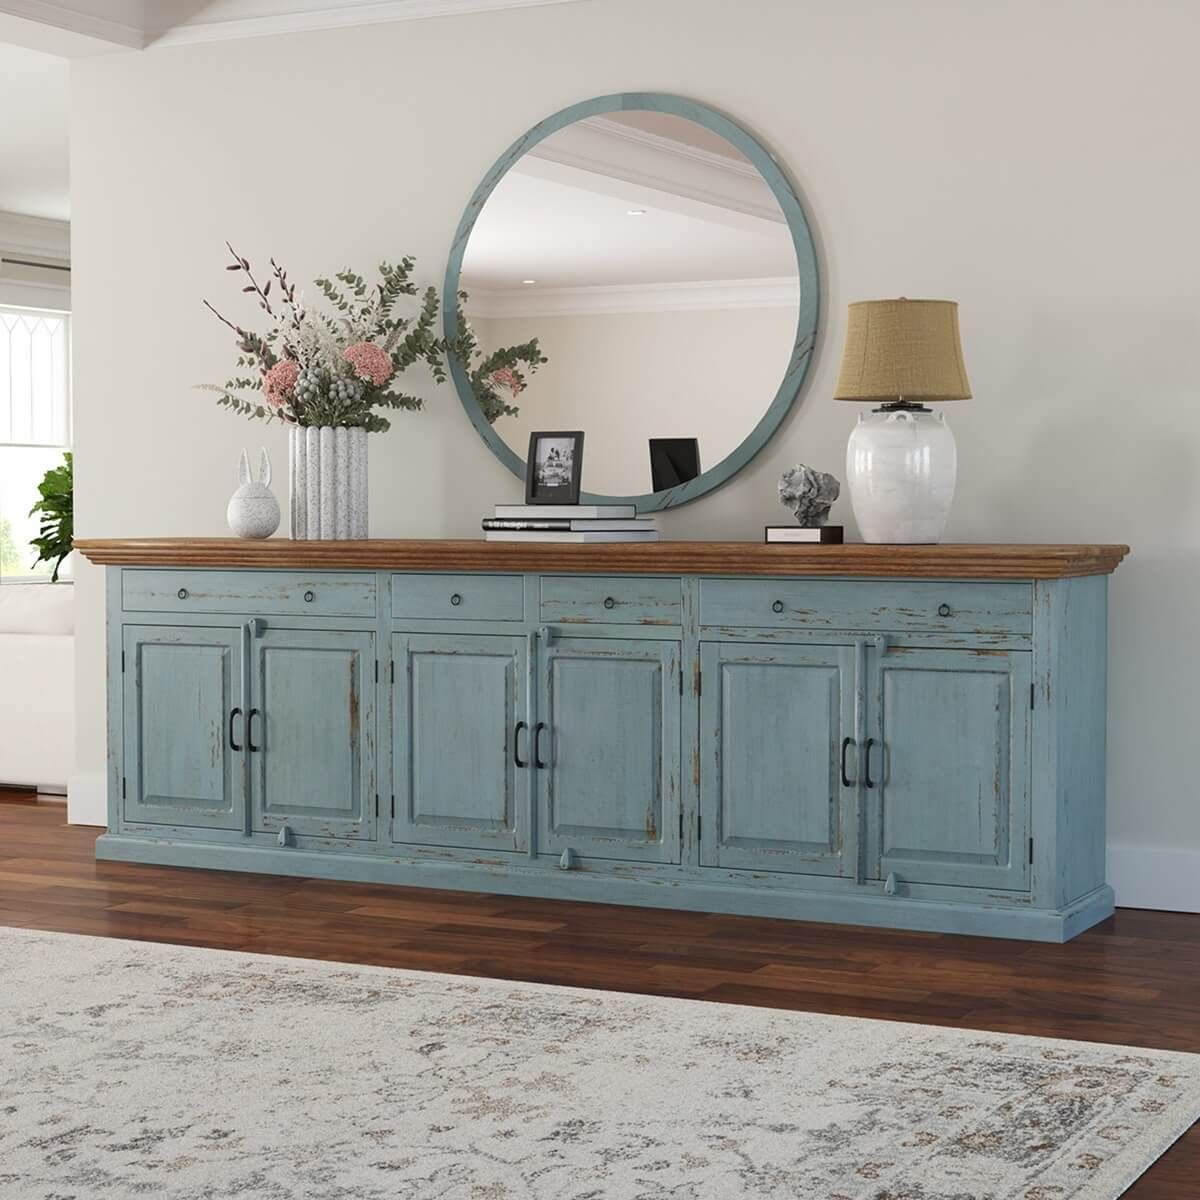 Pin By Nina Montes On Decoracion In 2021 Sideboard Decor Dining Room Dinning Room Buffet Dining Room Sideboard